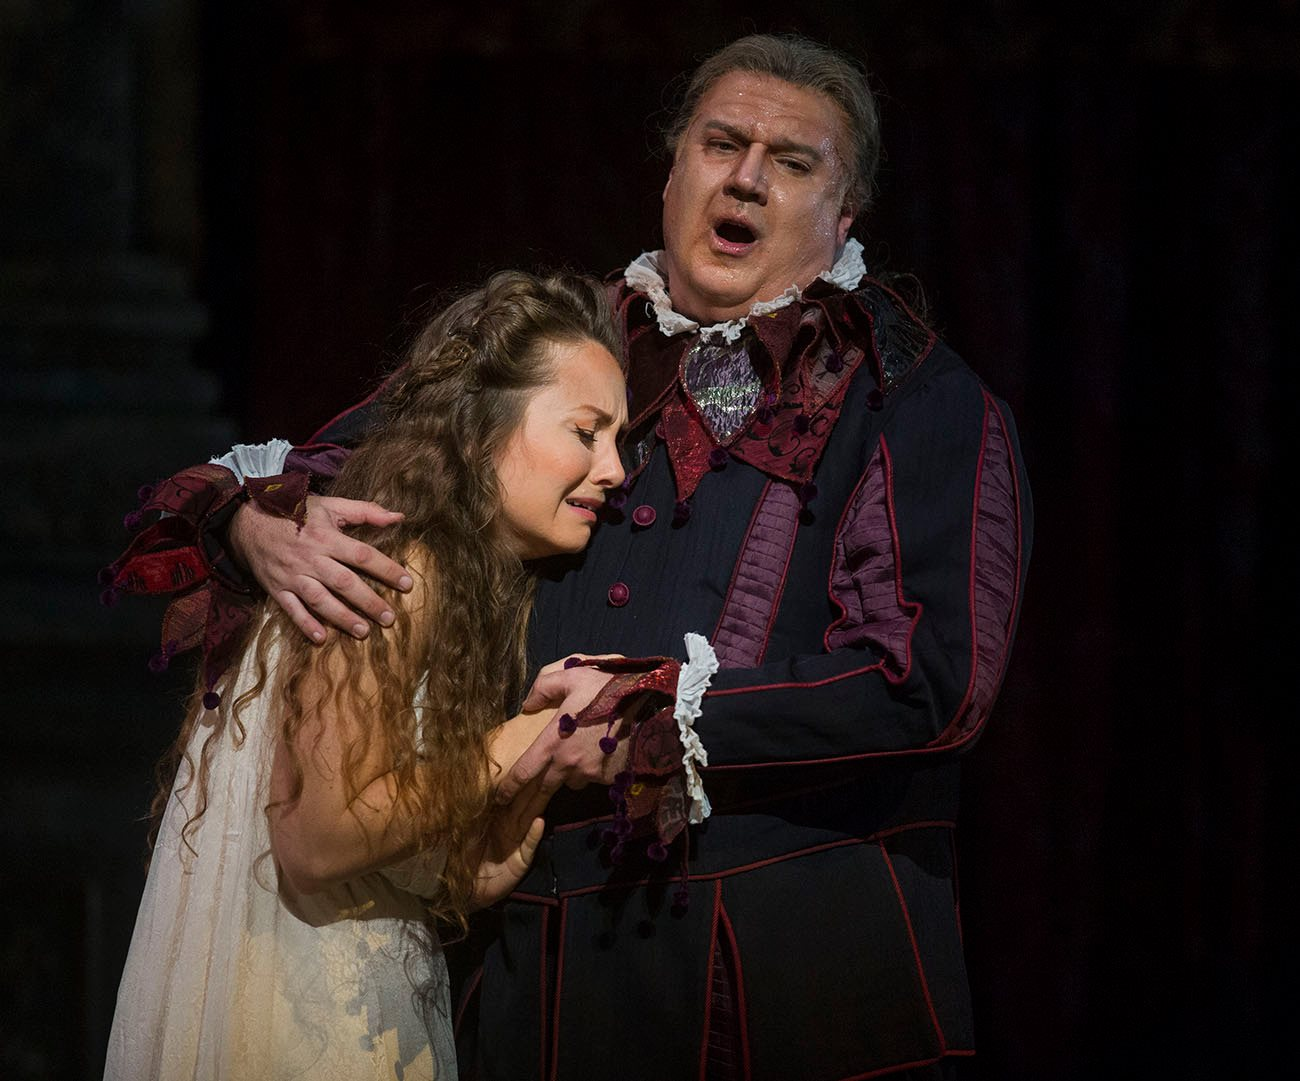 uploads/rigoletto-austin-opera-2019-photographer-unidentified/72635274_10157425354483859_408365632237600768_o.jpg